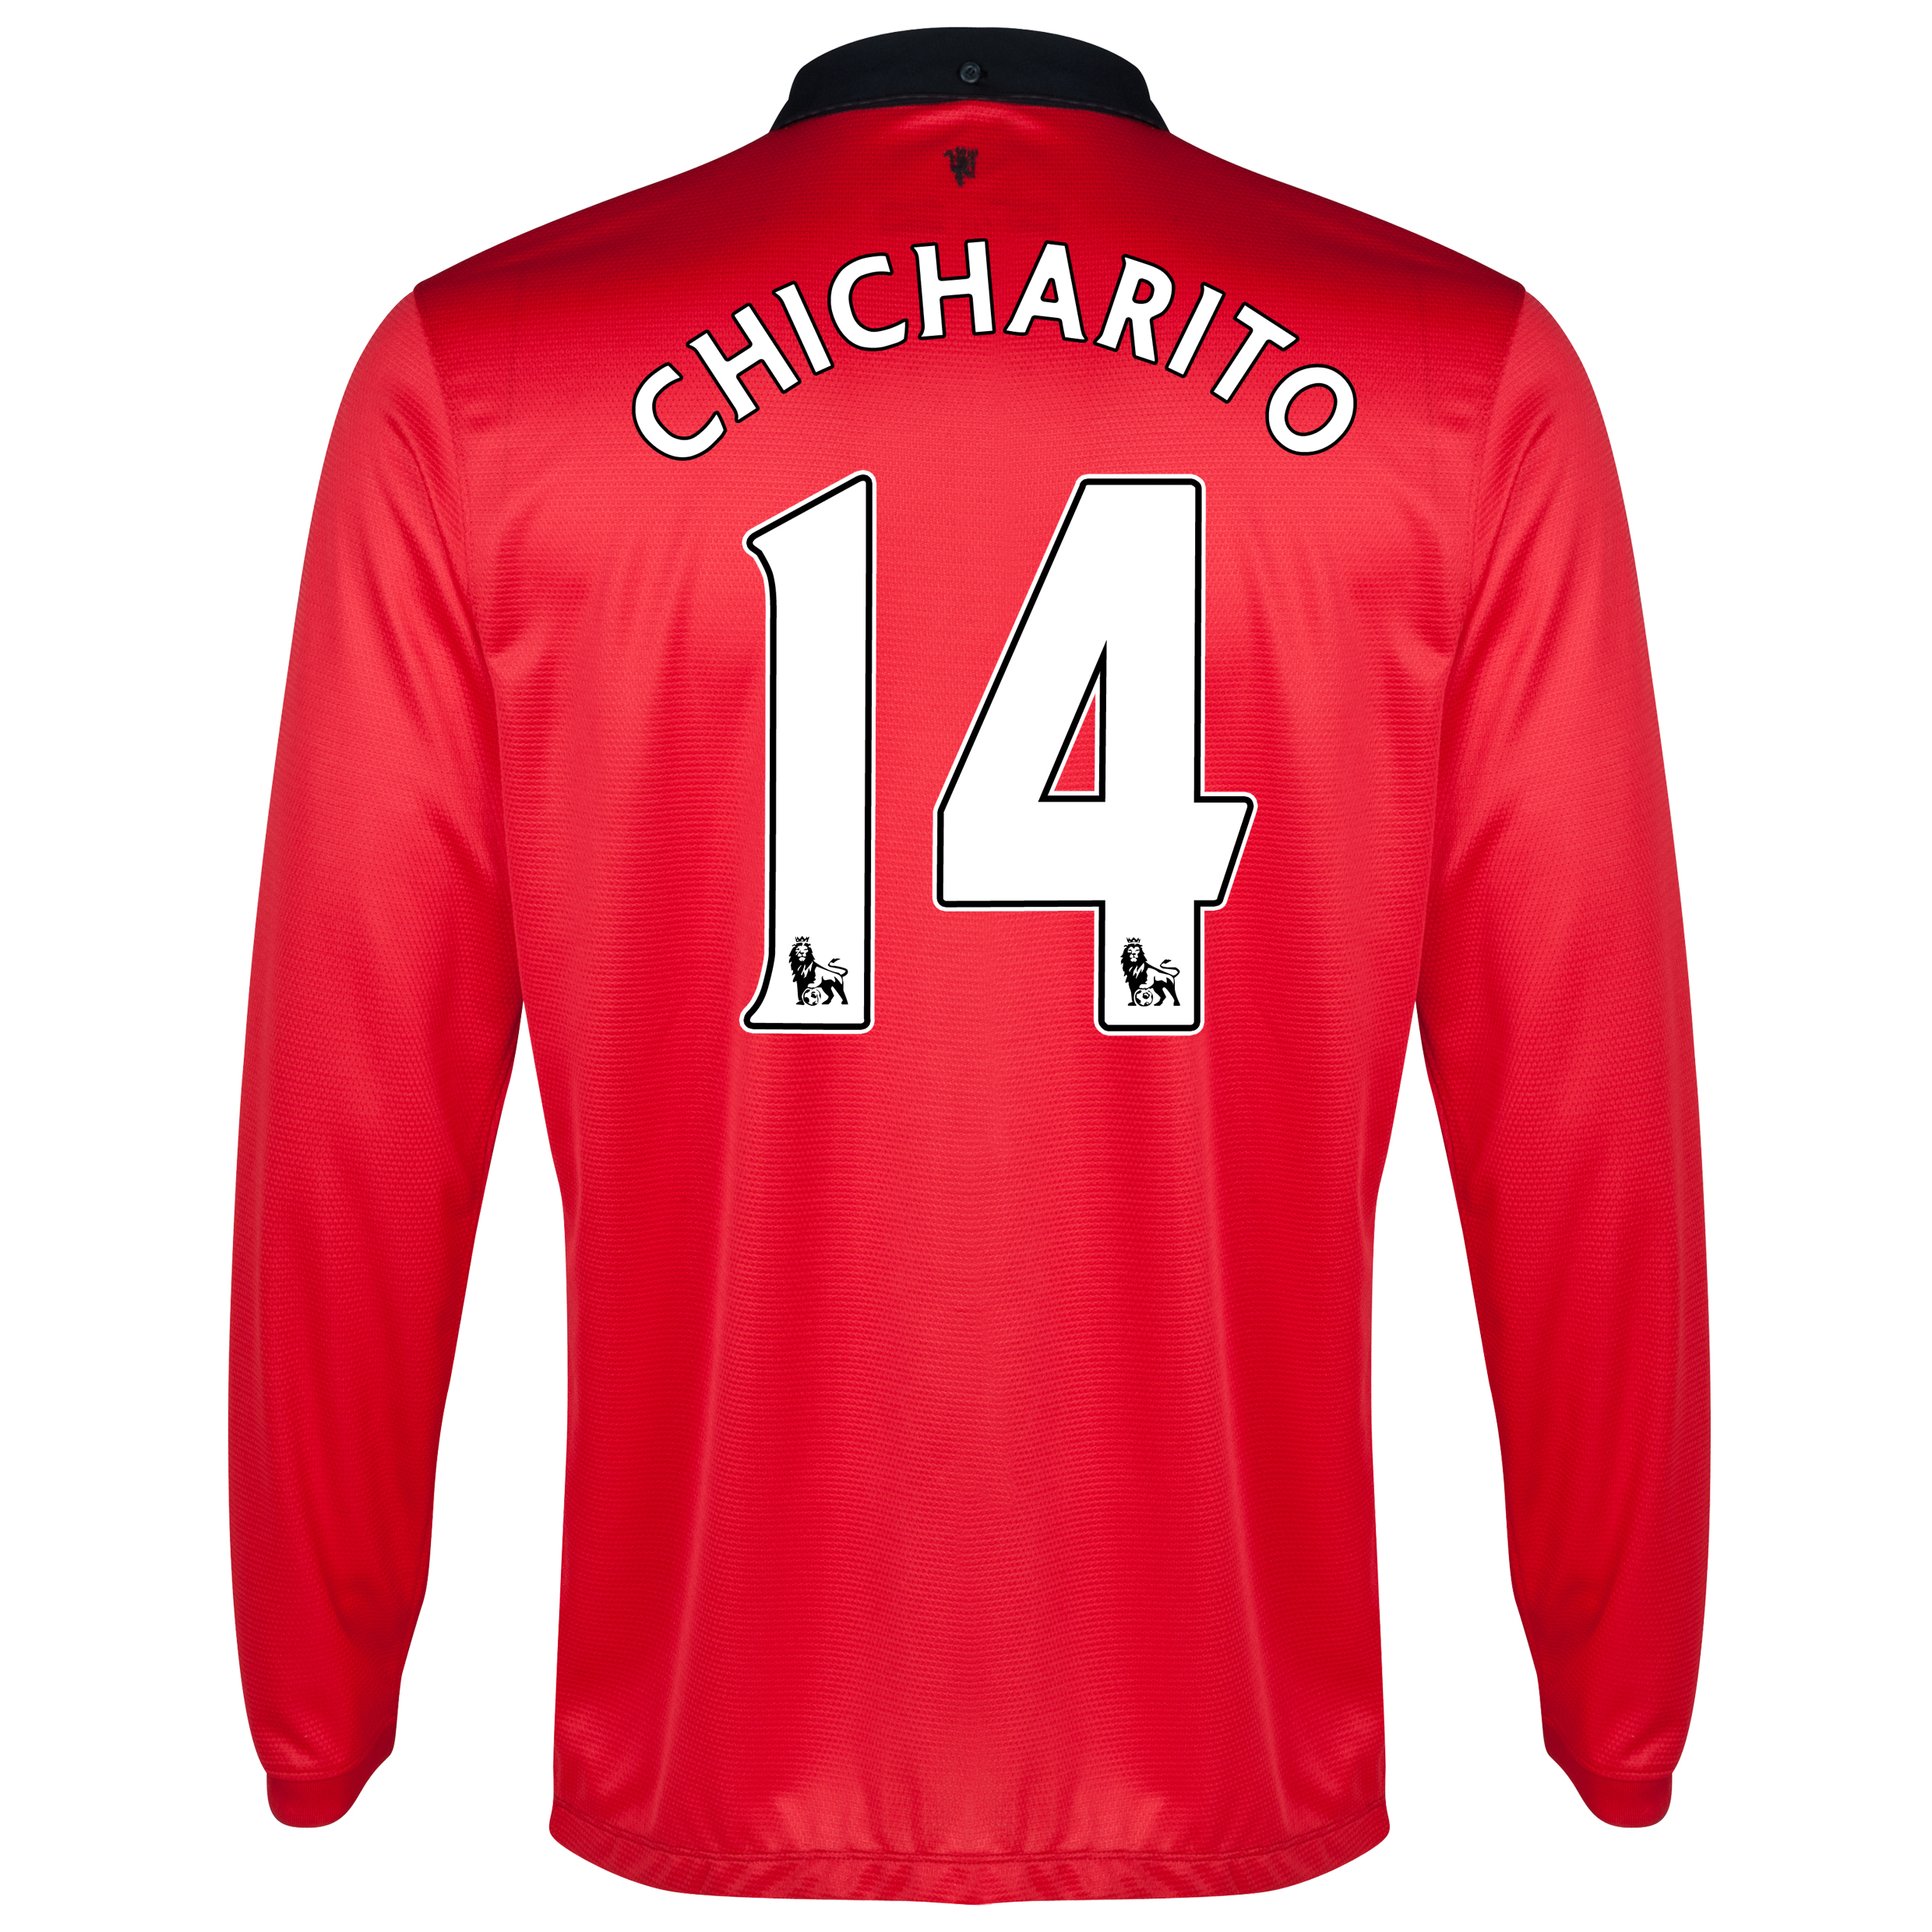 Manchester United Home Shirt 2013/14 - Long Sleeved - Kids with Chicharito 14 printing